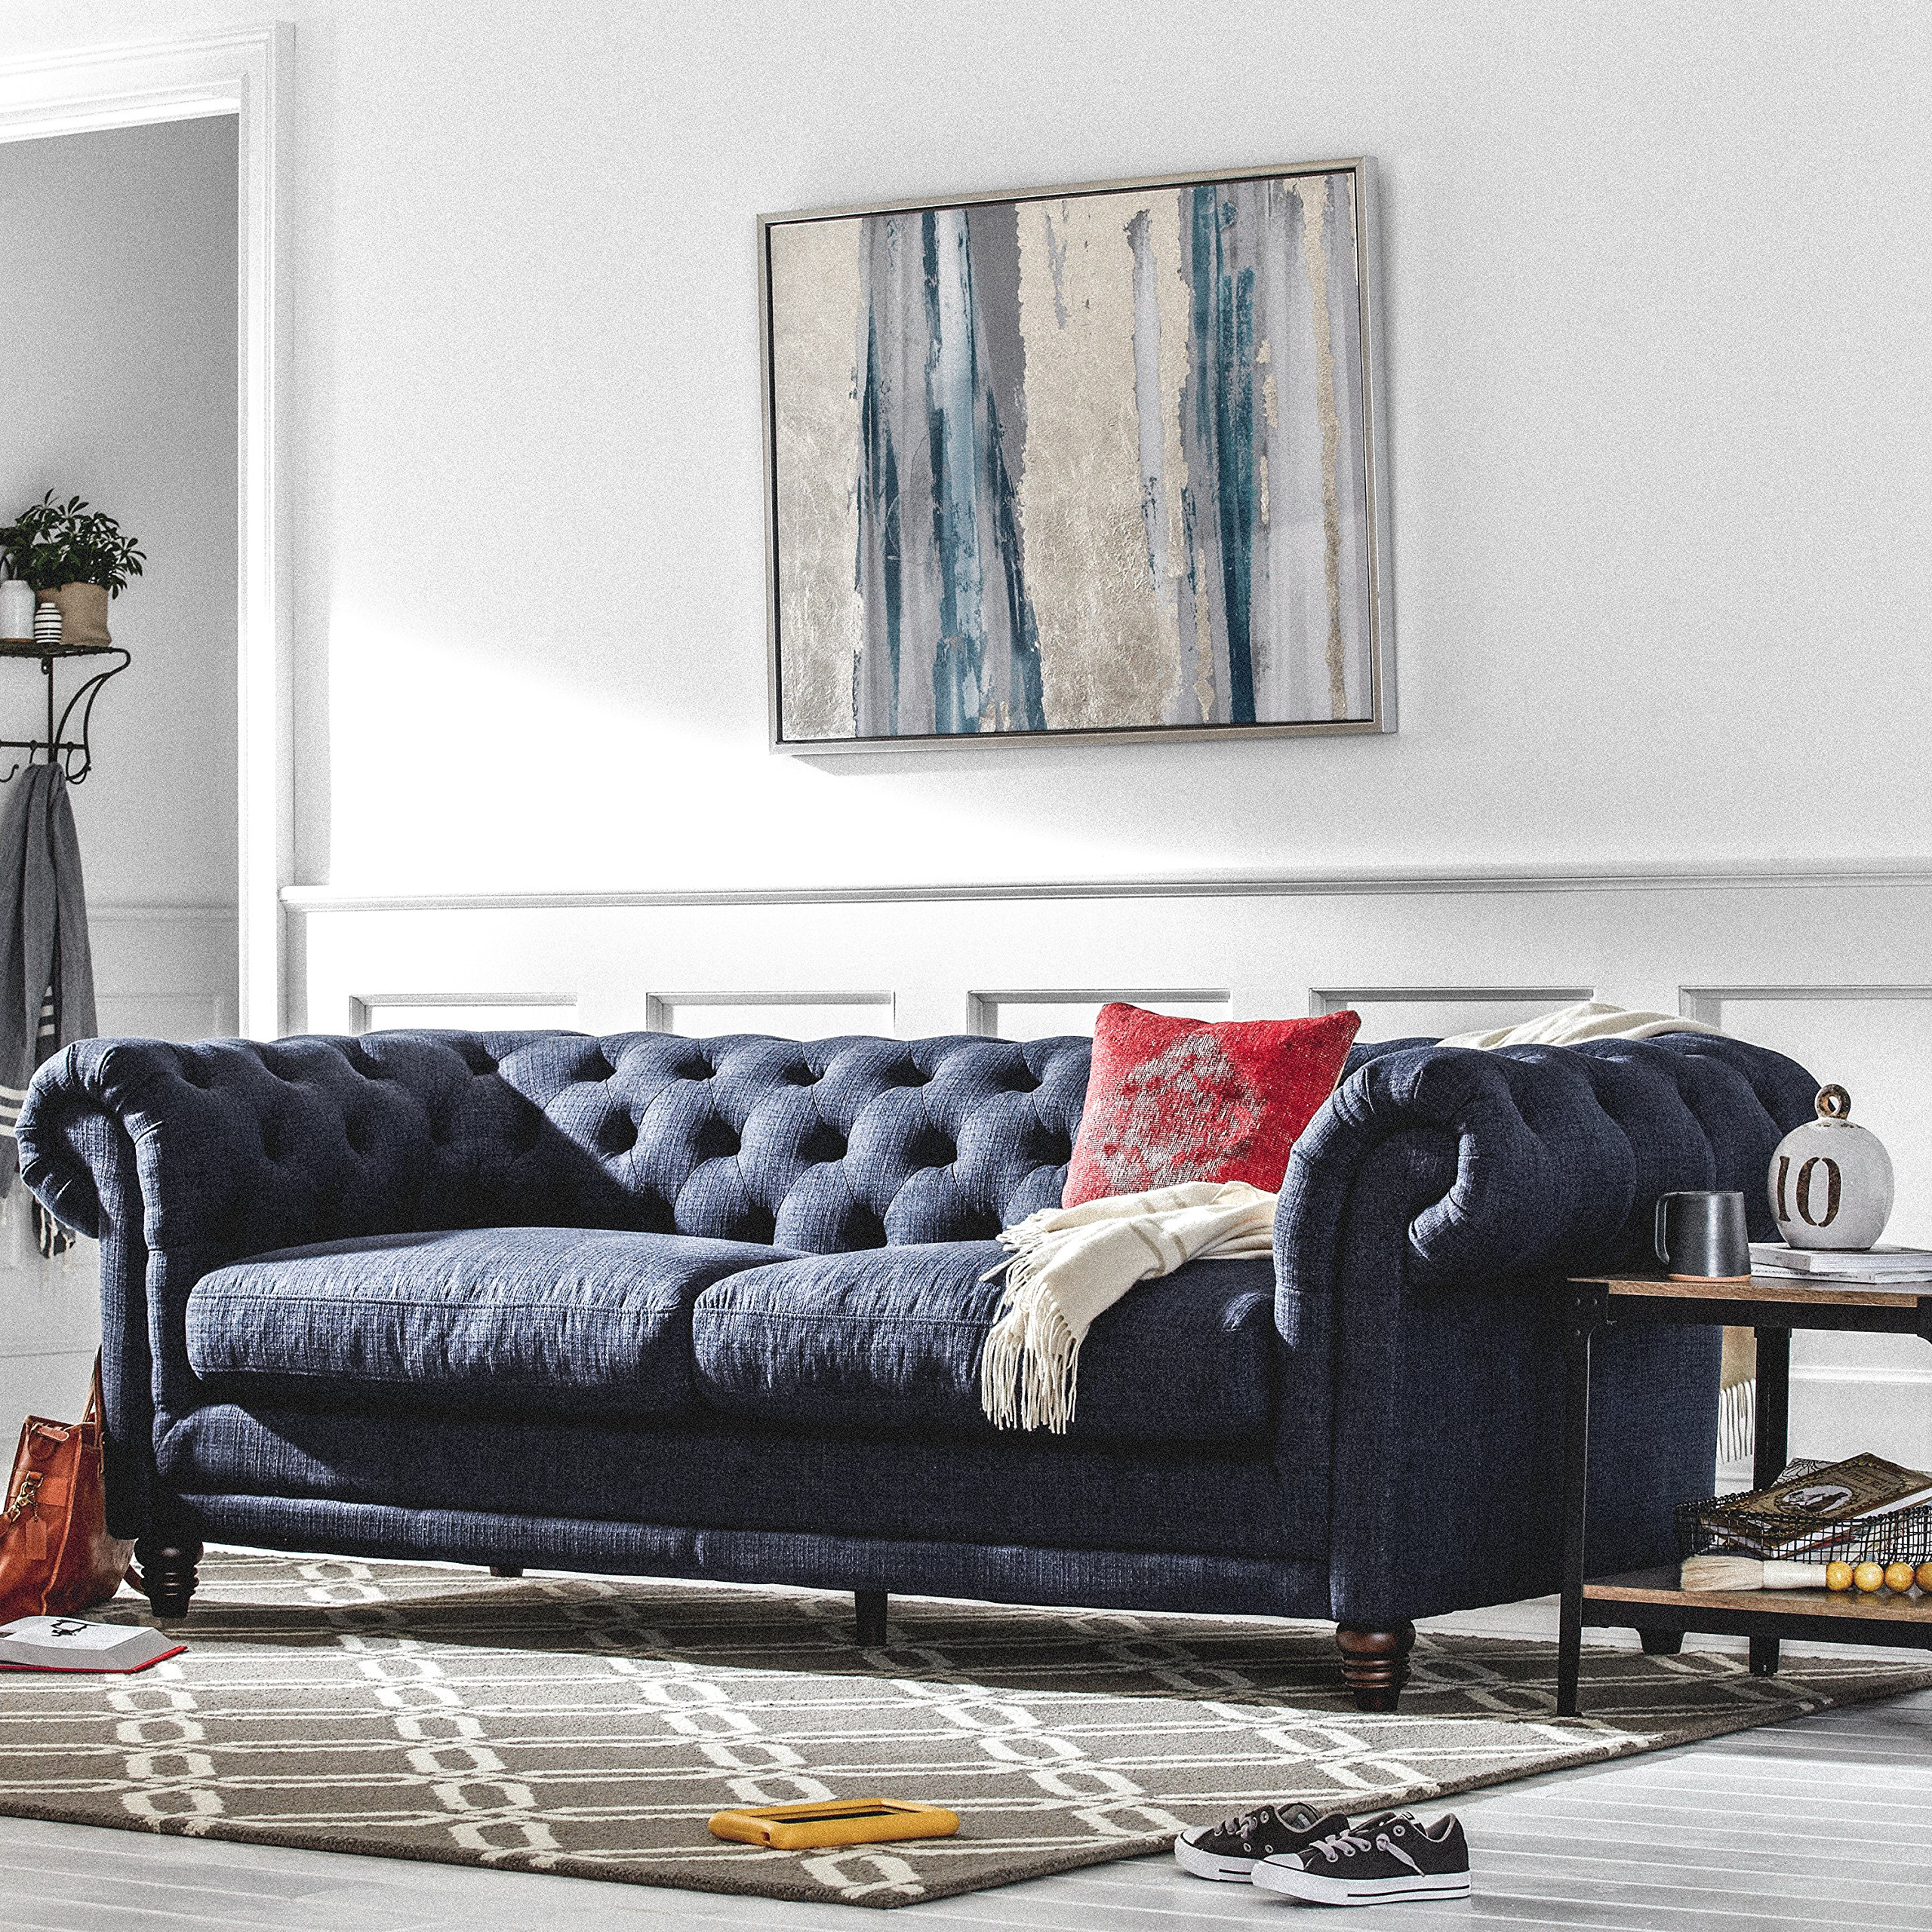 Let Us Start With This Classic Living Room Masterpiece. The Chesterfield  Sofa Has Been Among The Choicest Furniture Collections In Royal Households  Of ...